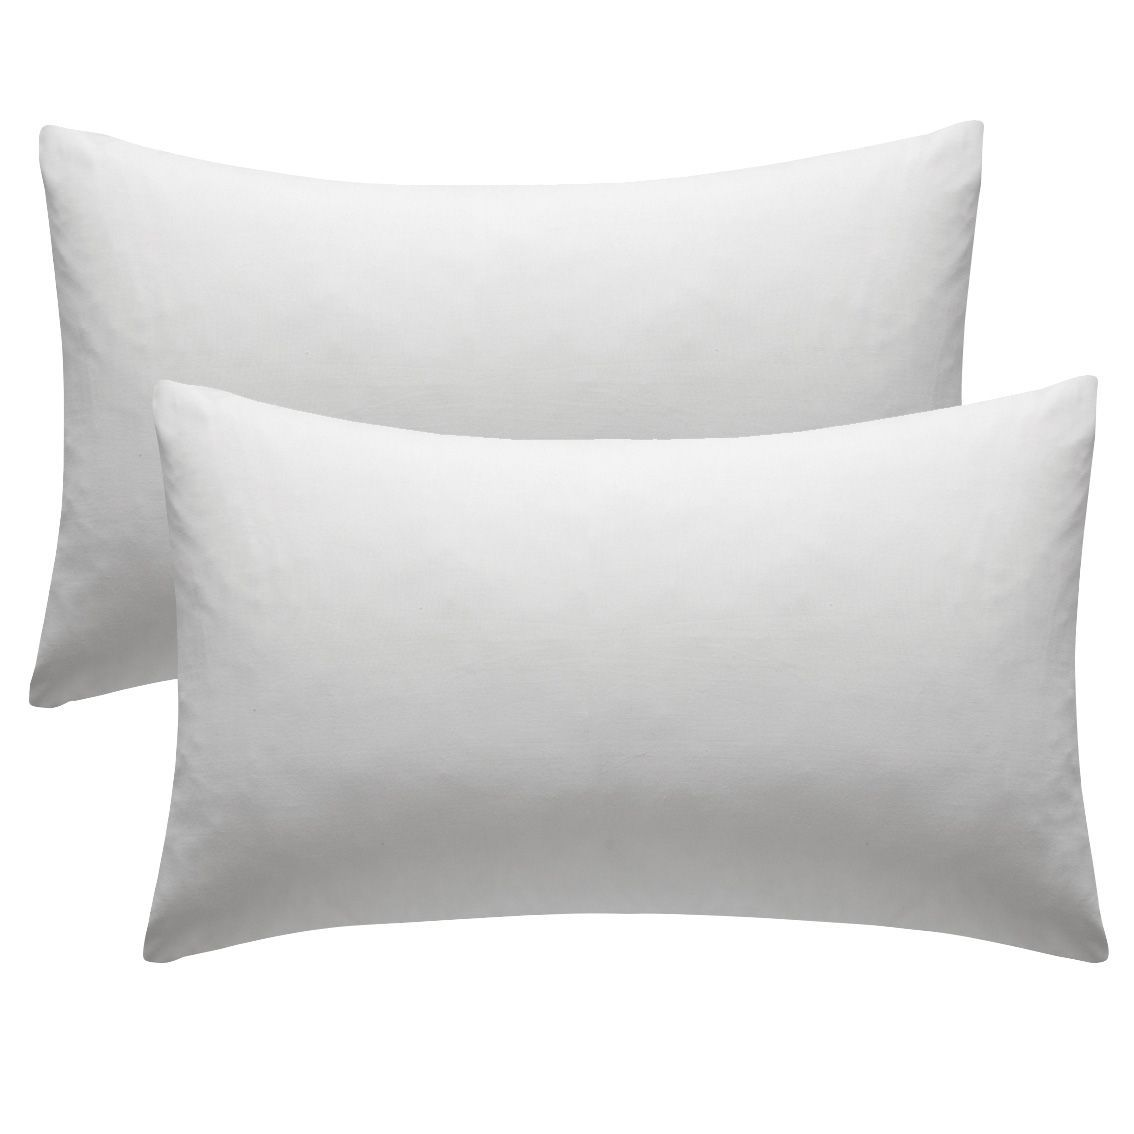 Chartwell Plain Housewife White Pillow case, Pack of 2 | Departments ...